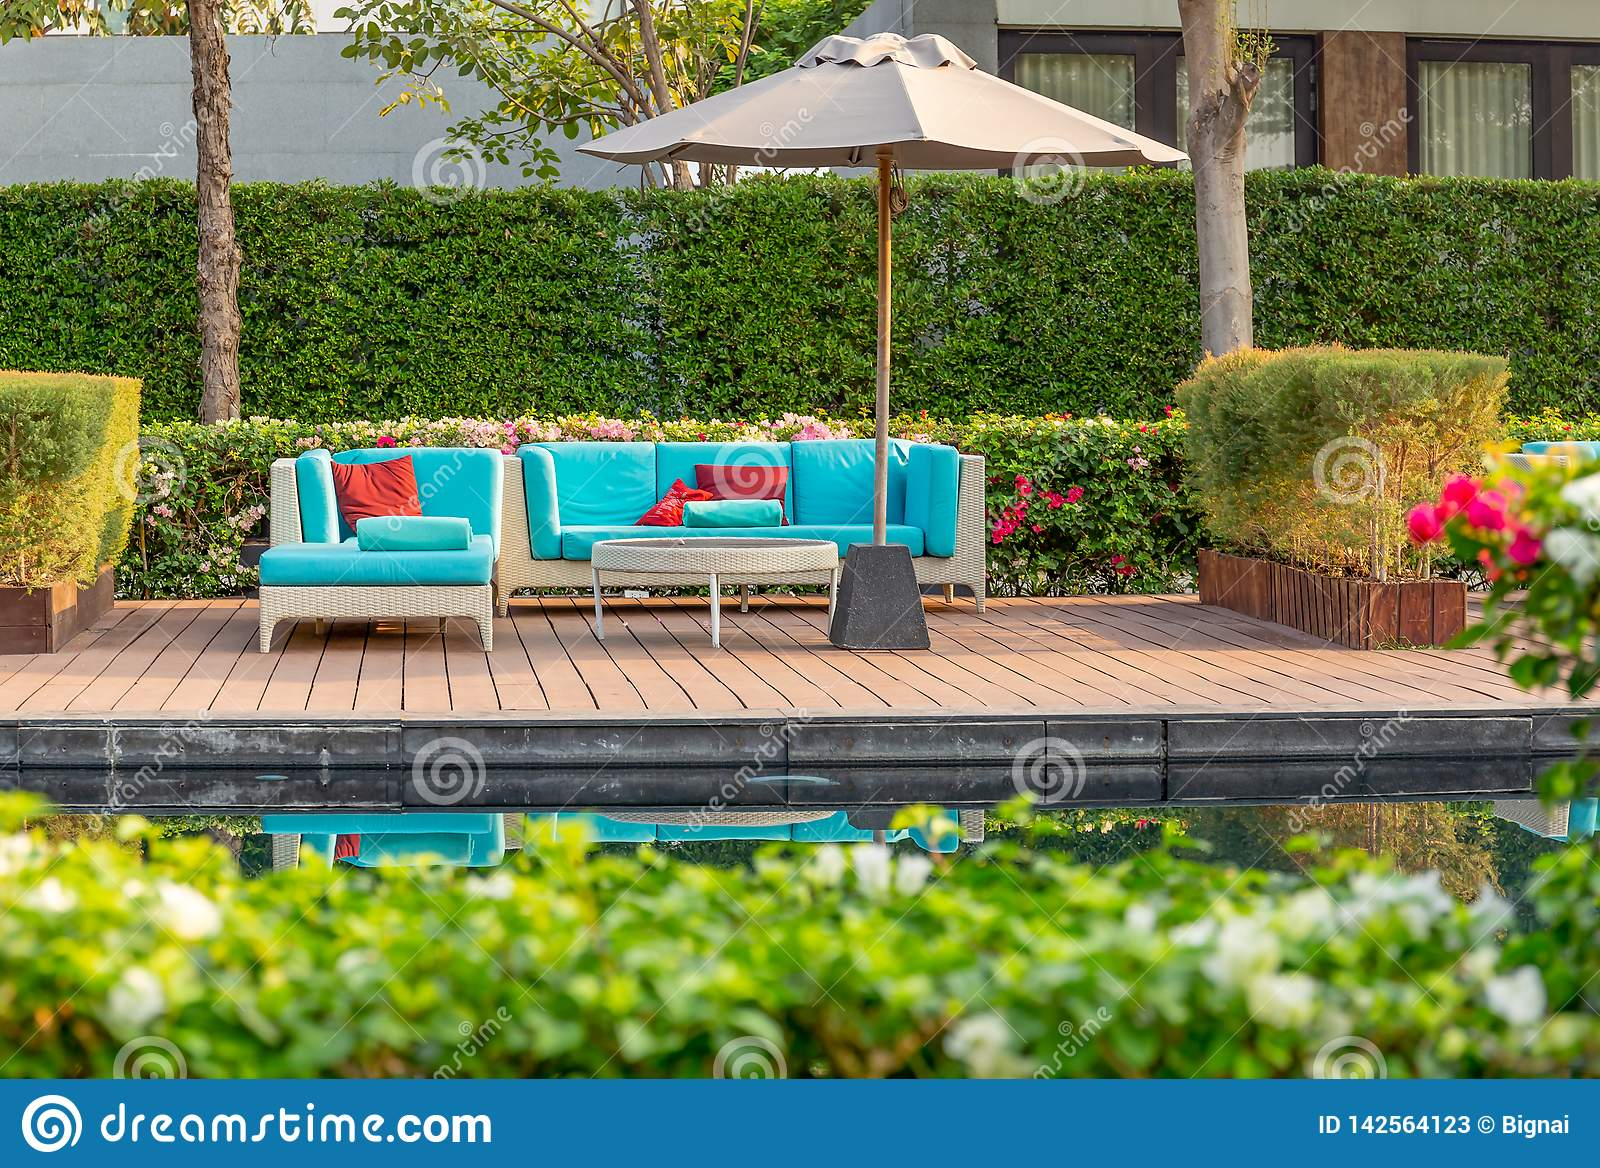 Large terrace patio with rattan furniture in the garden with umbrella.